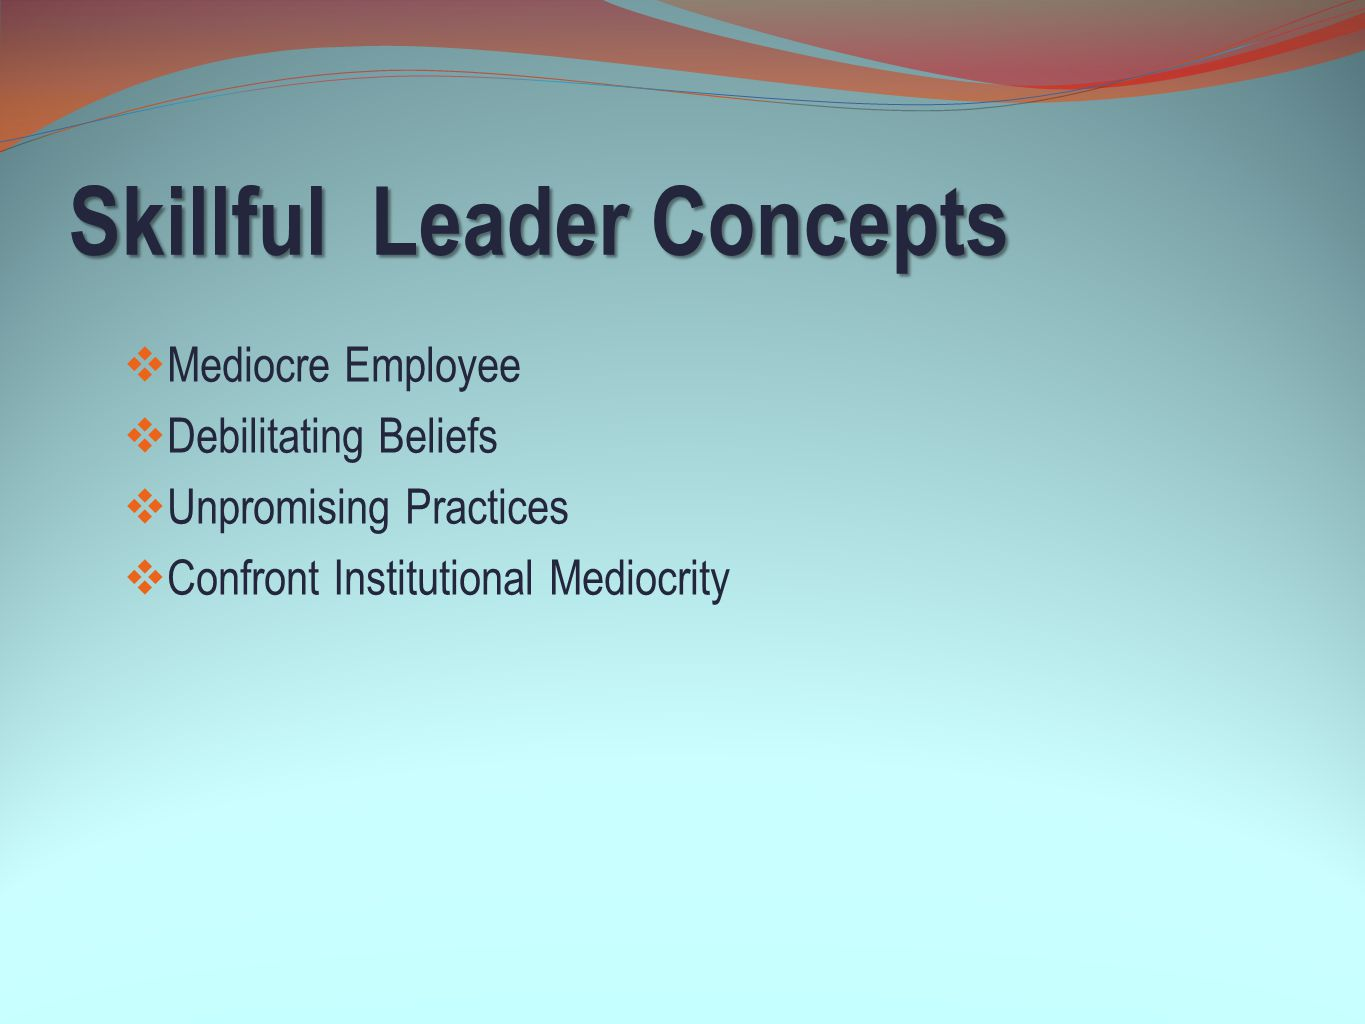 Skillful Leader Concepts  Mediocre Employee  Debilitating Beliefs  Unpromising Practices  Confront Institutional Mediocrity